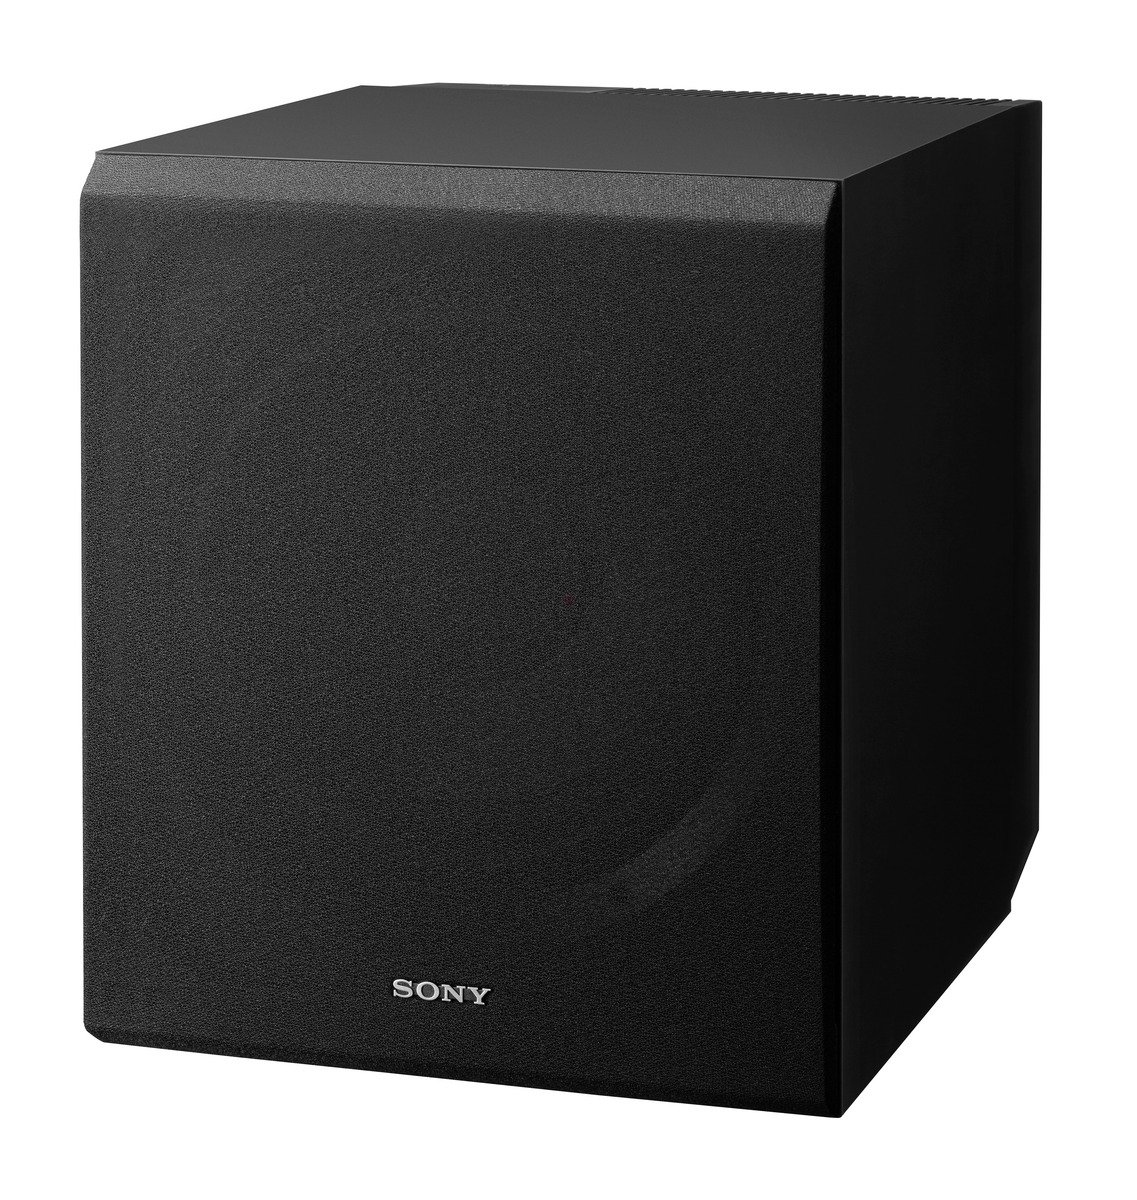 speakers sony. sony sacs9 10-inch active subwoofer, black: $178.00 with free prime shipping (4.8 stars) speakers